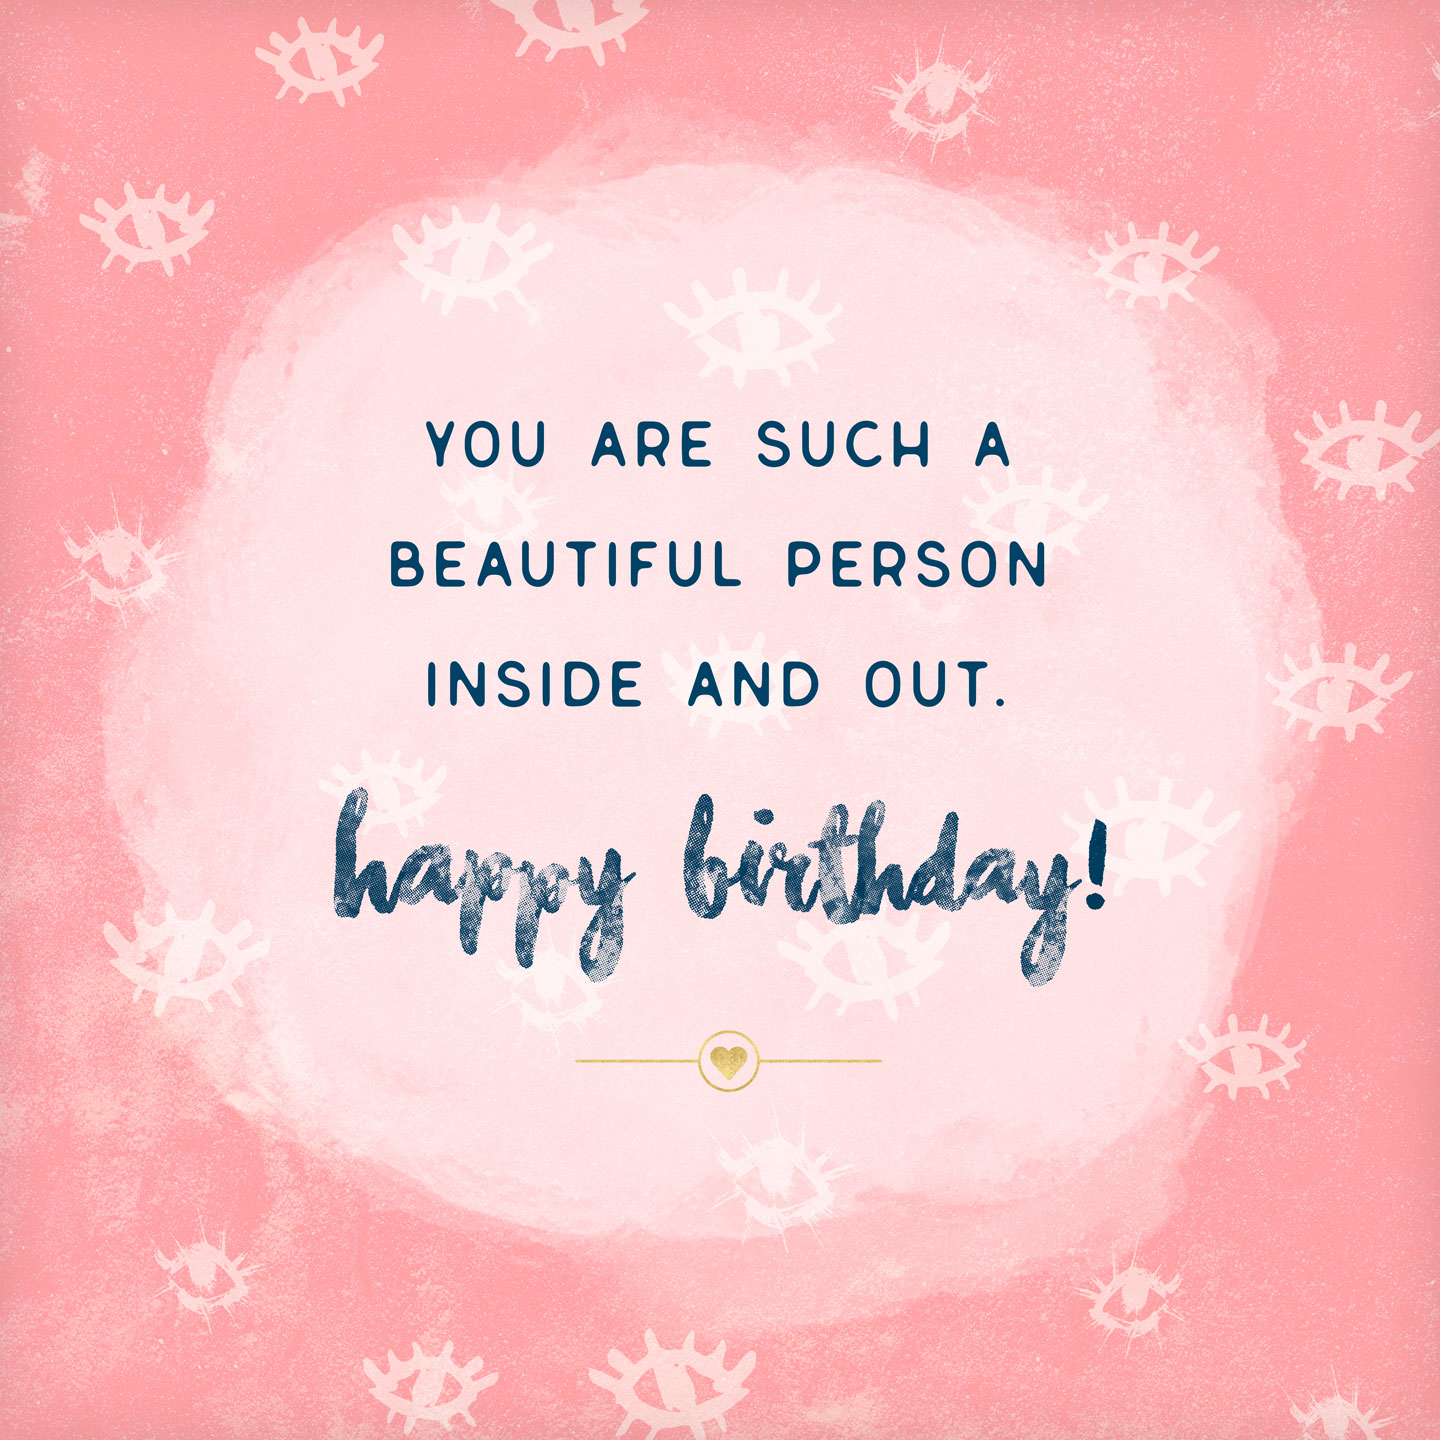 thoughtful birthday card messages ; birthday-card-messages-friend